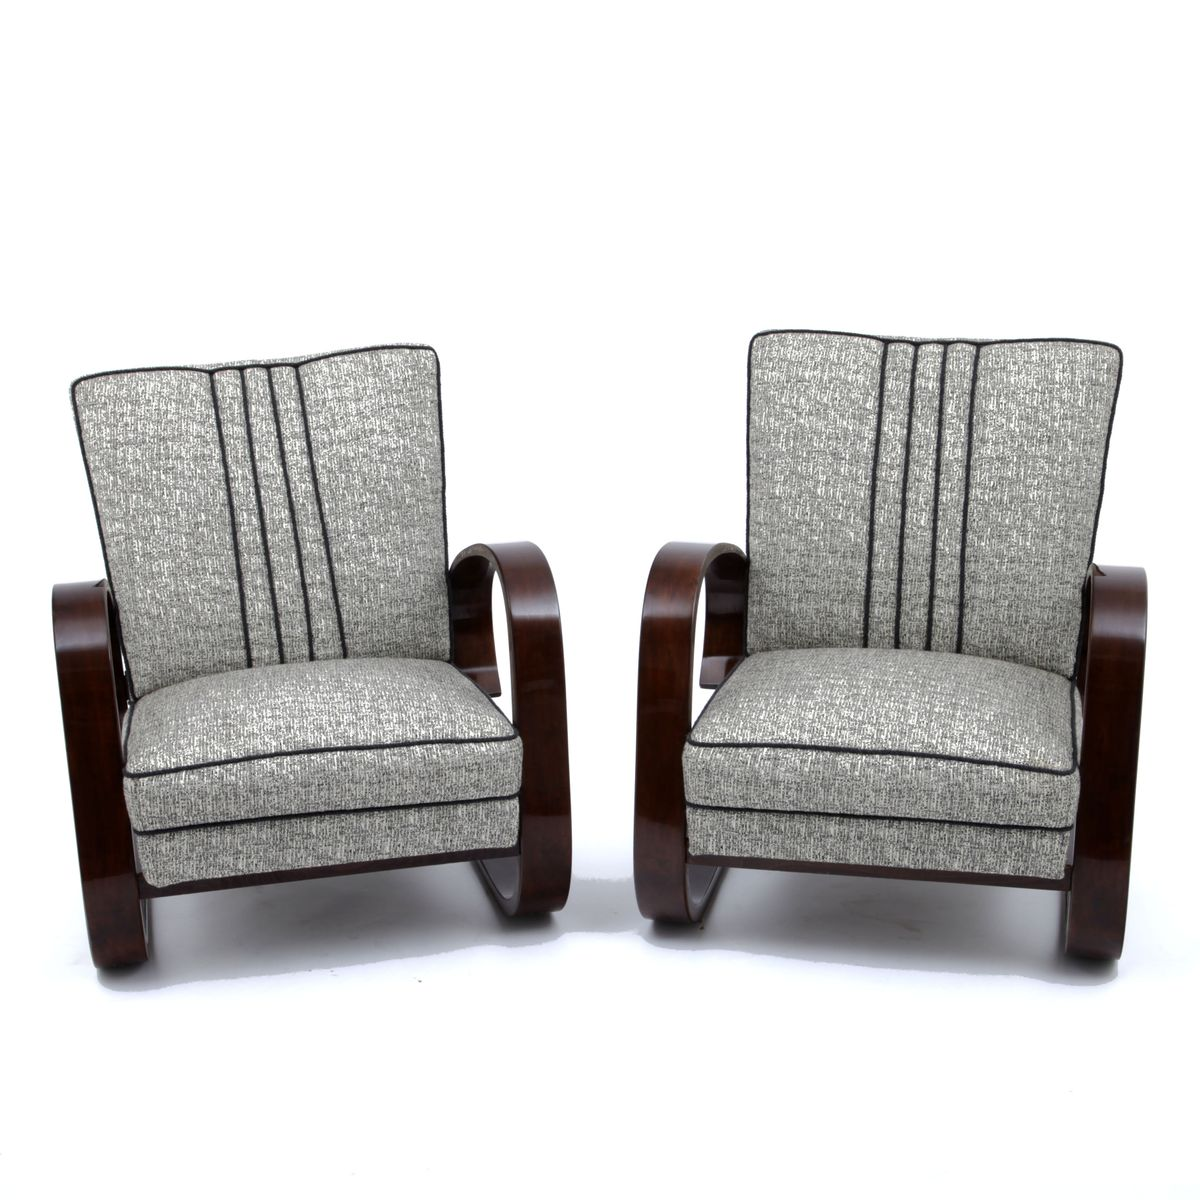 Czech armchairs 1930s set of 2 for sale at pamono for 2 armchairs for sale